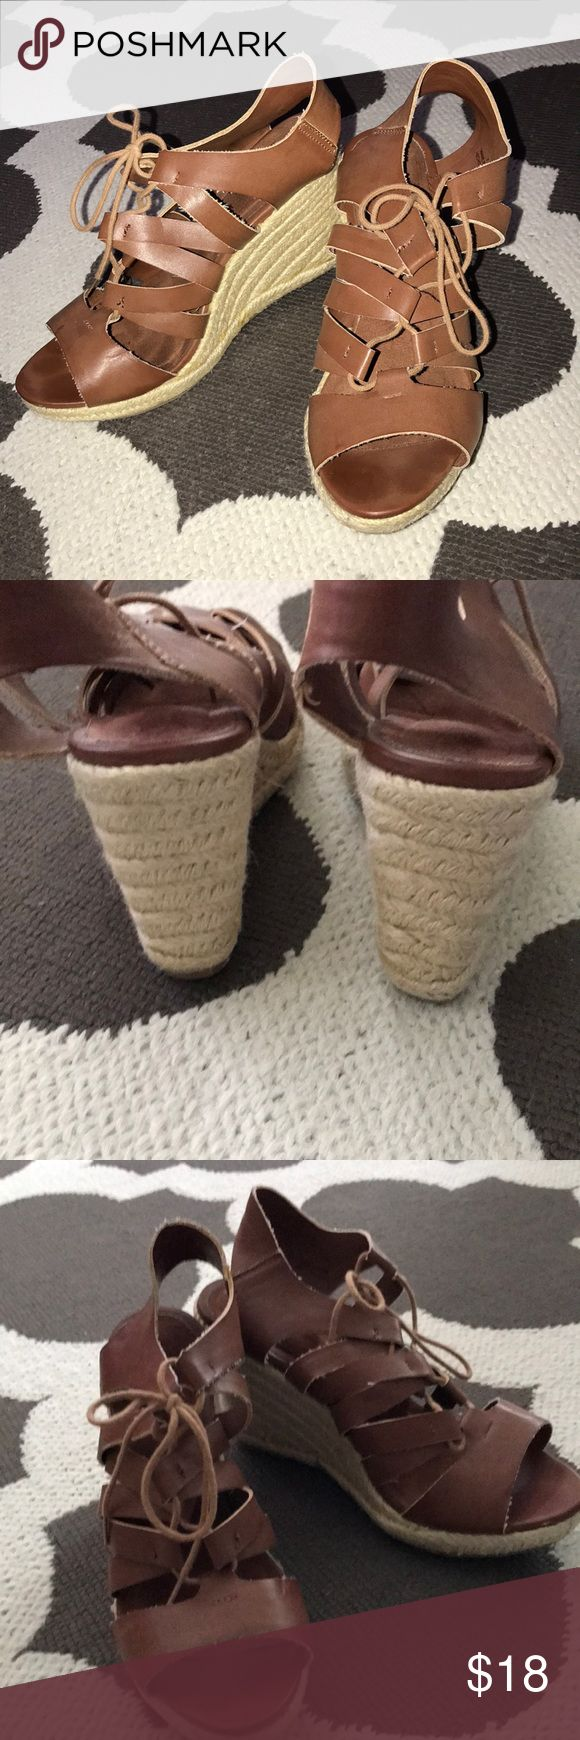 Brown espadrilles wedges SZ 7 Old Navy  camel/ brown faux leather wedges. Espadrilles style. Lightly used- only worn twice. No marks or fraying on the espadrilles weaving. Old Navy Shoes Wedges